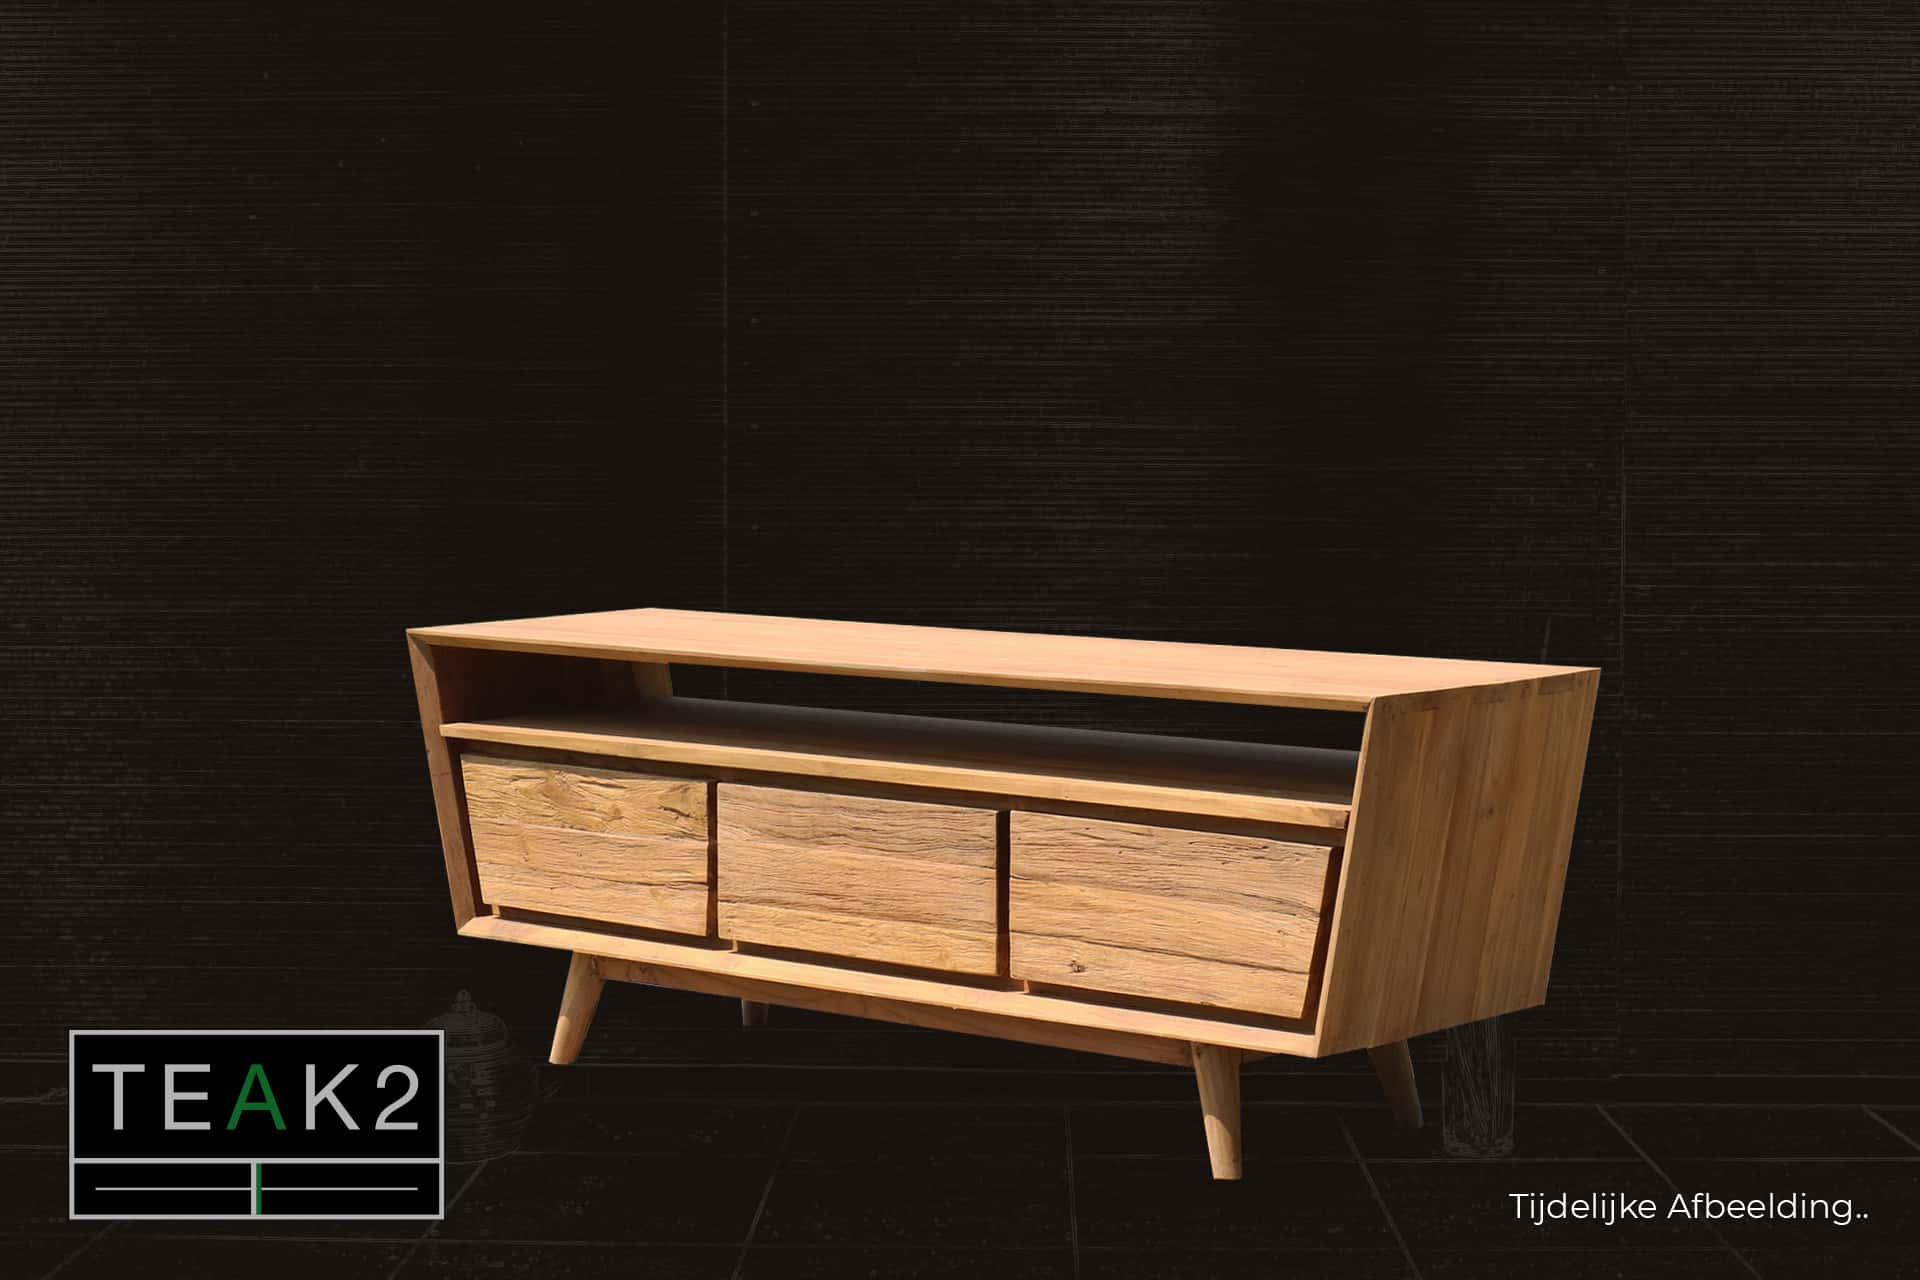 Scandinavisch Design Meubelen : Teak bersih tv retro tv meubel scandinavisch design in teak